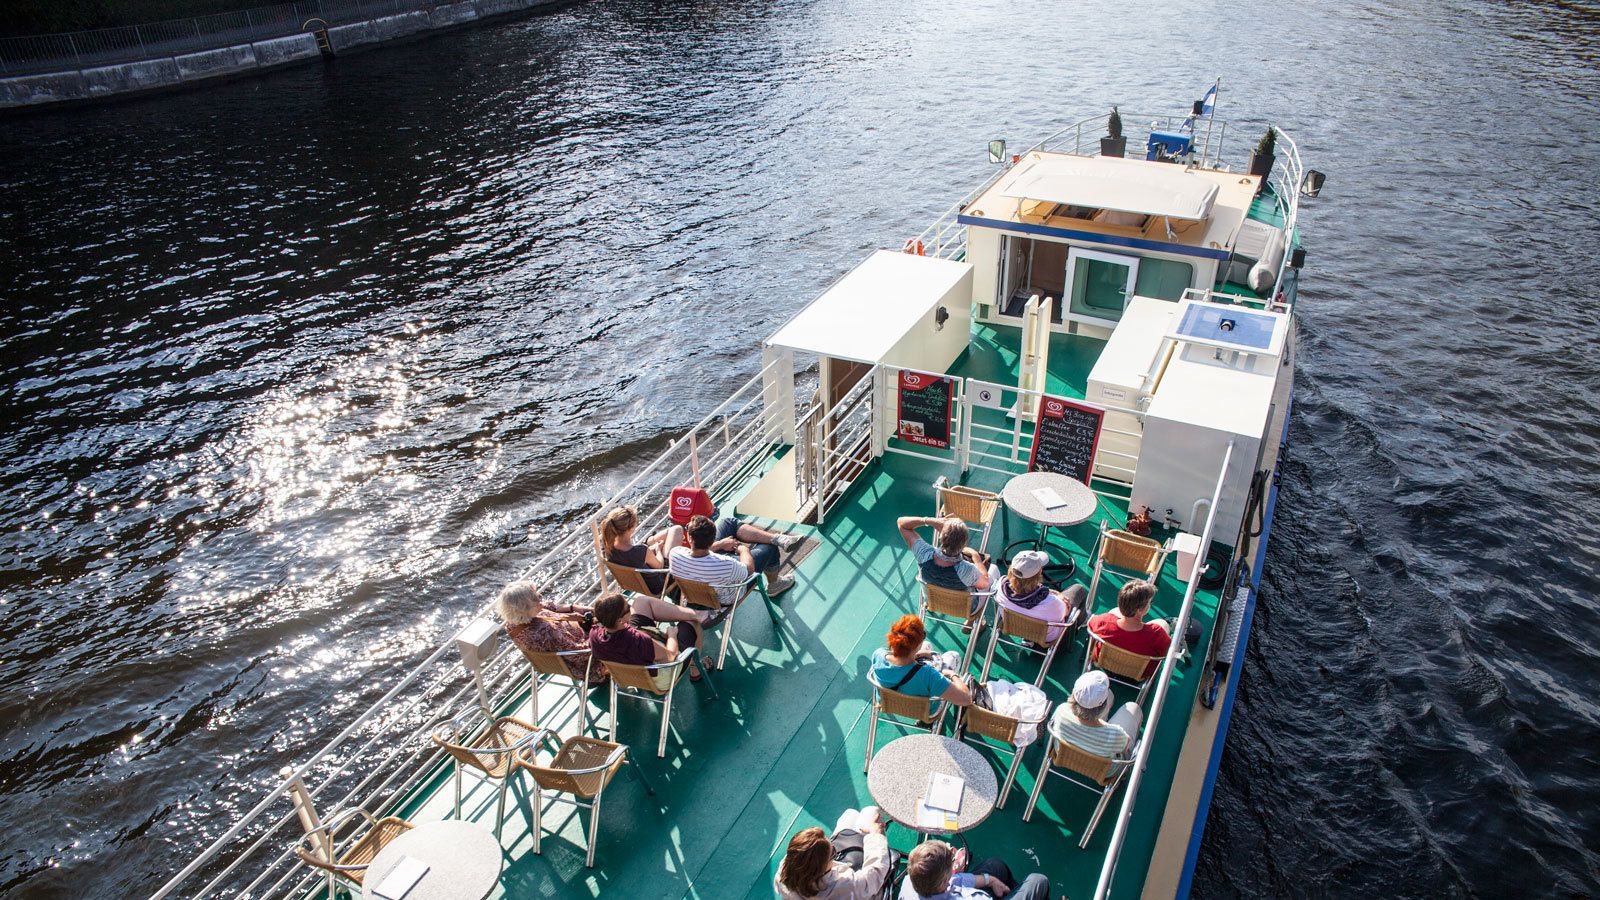 aboard a boat on a sunny day in Berlin